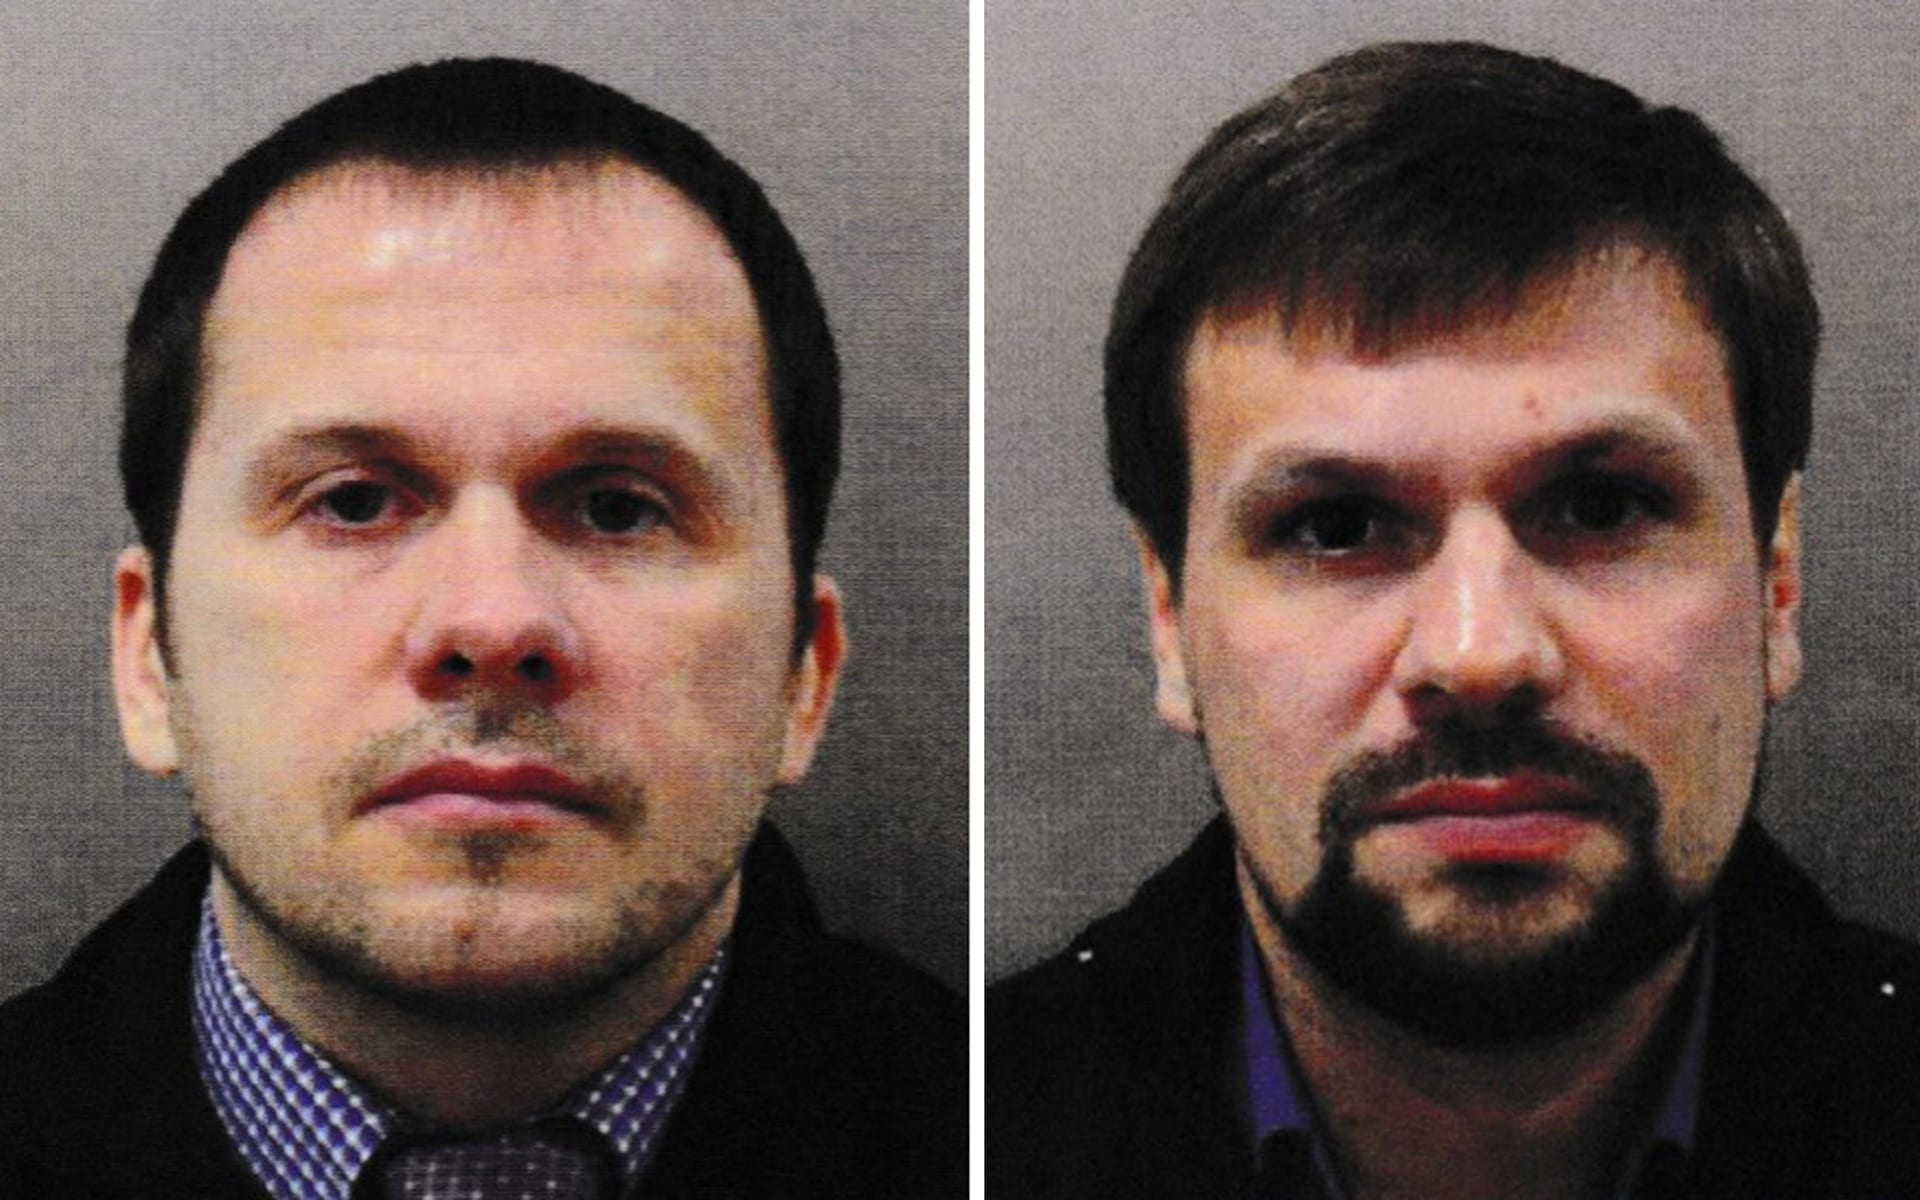 Alexander Petrov (left) and Ruslan Boshirov, whose true identity has now been revealed, carried out the attack. Фото: The Telegraph